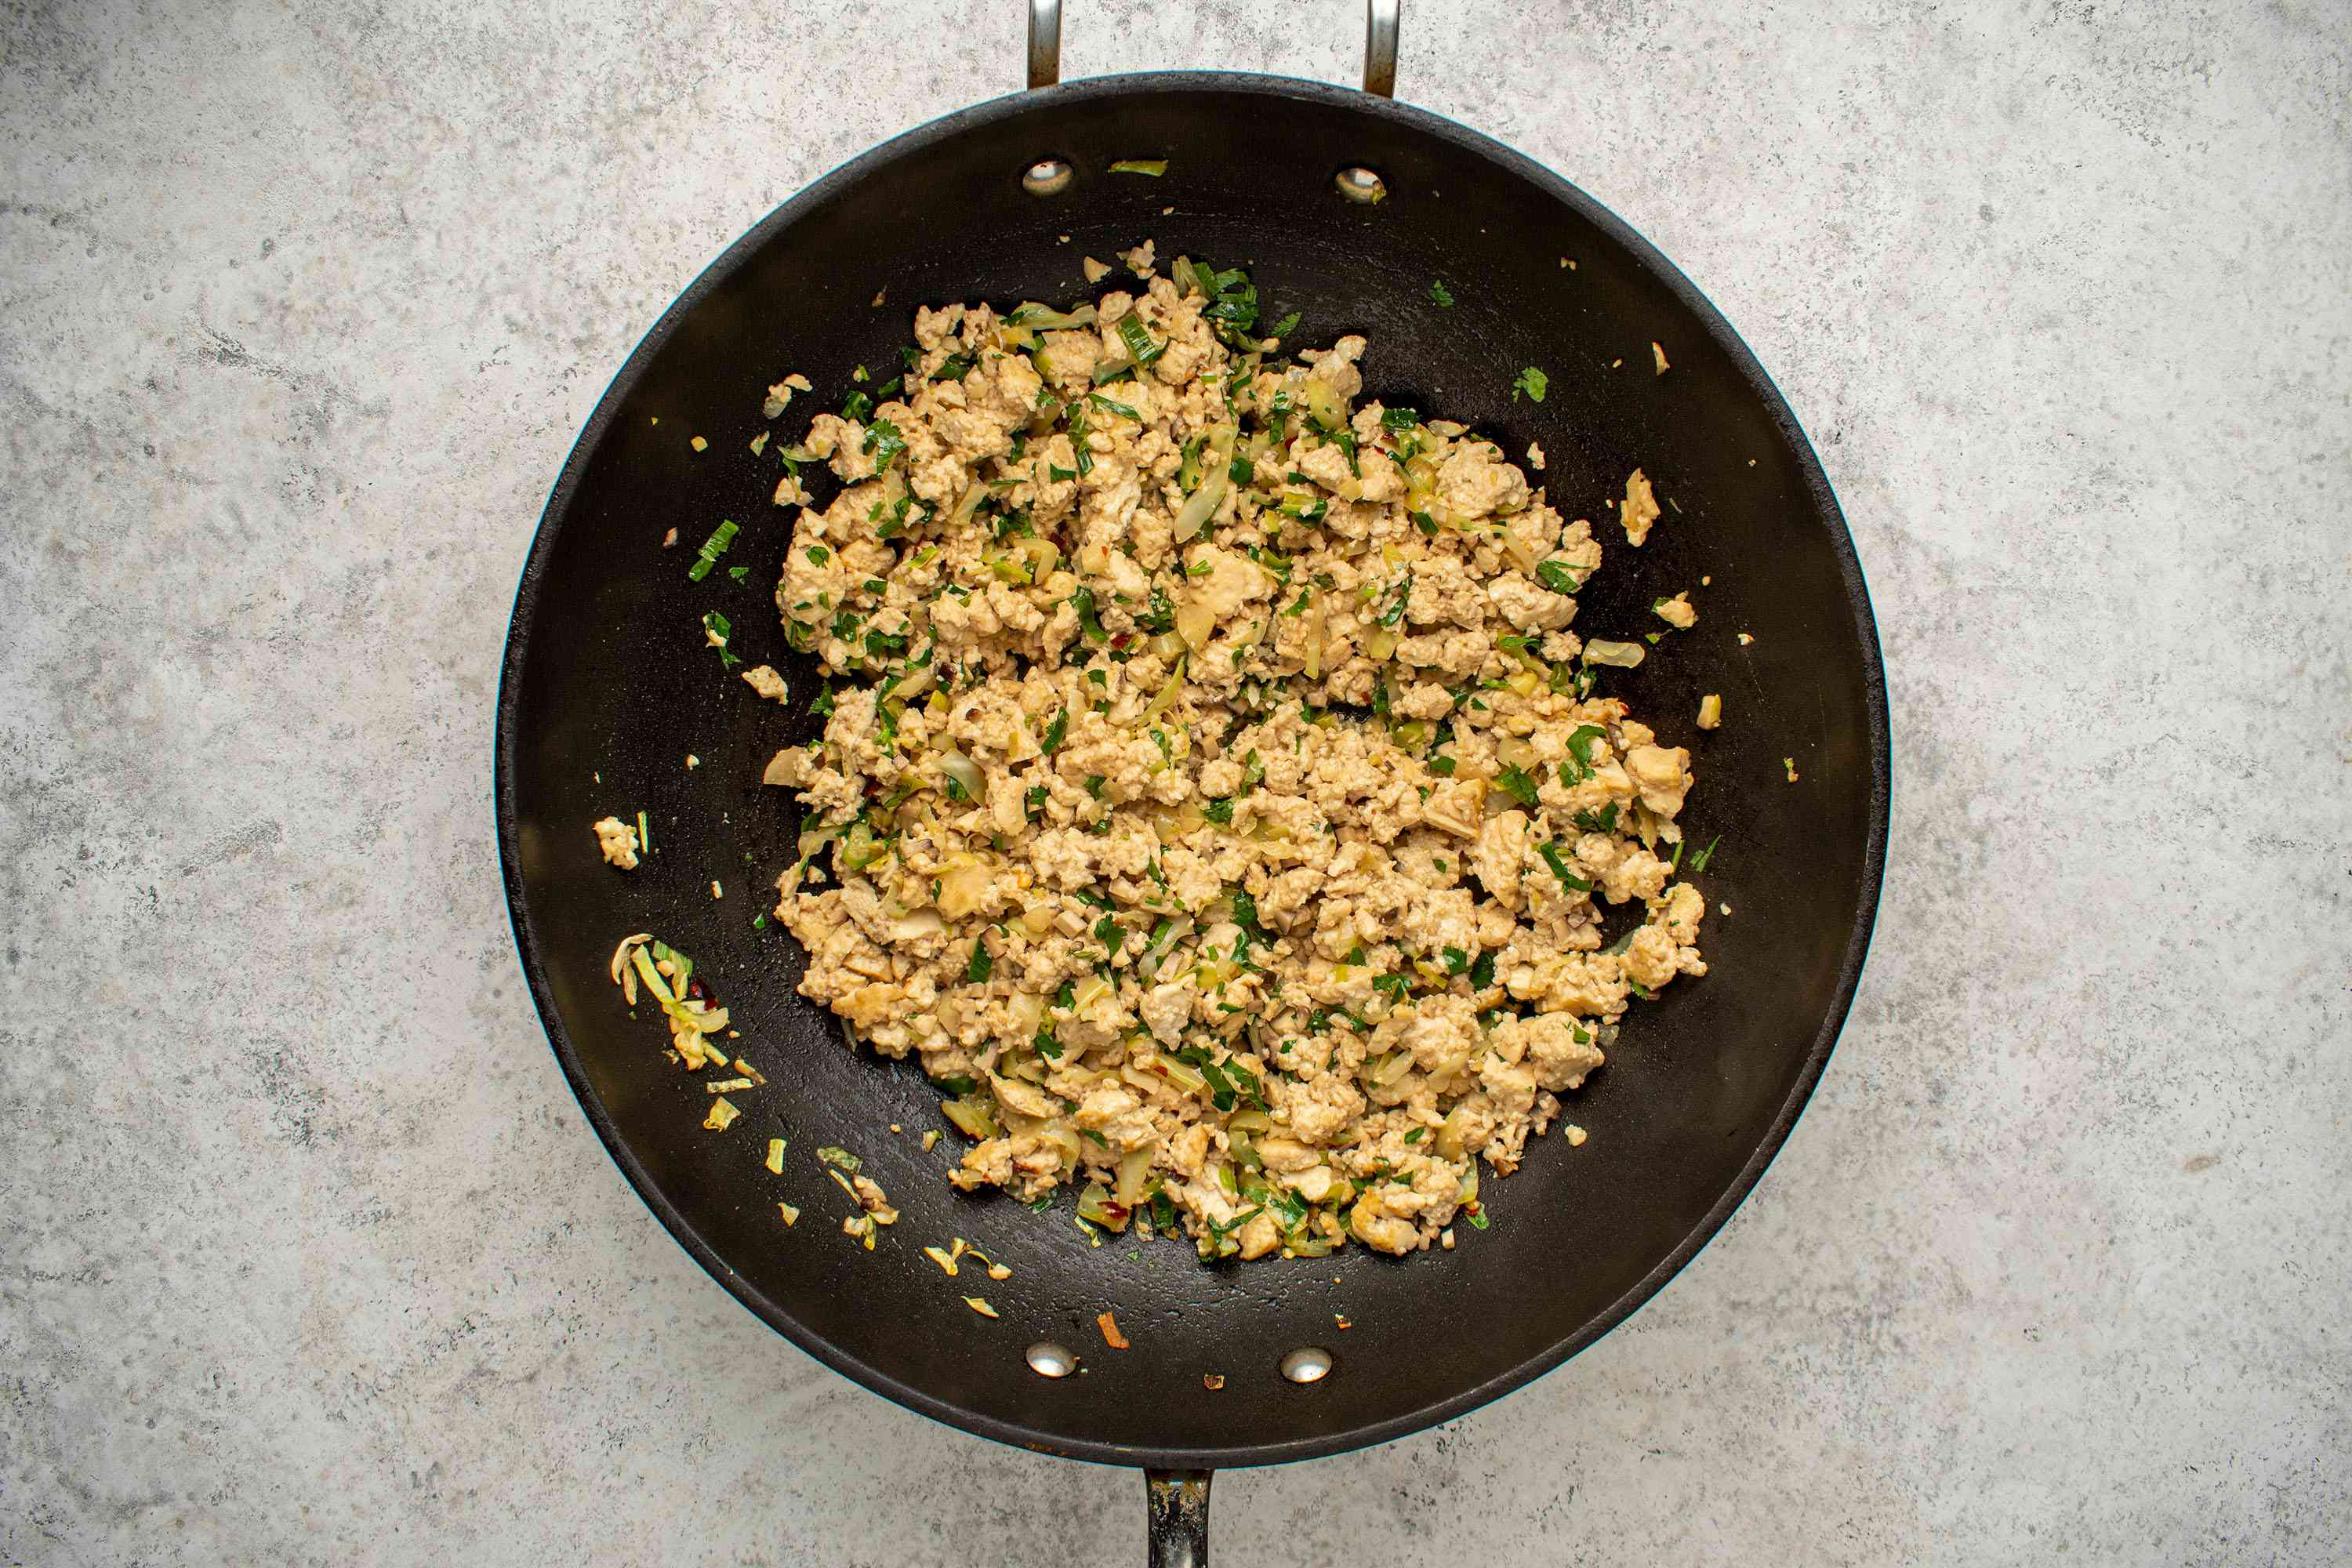 tofu mixture cooking in a wok